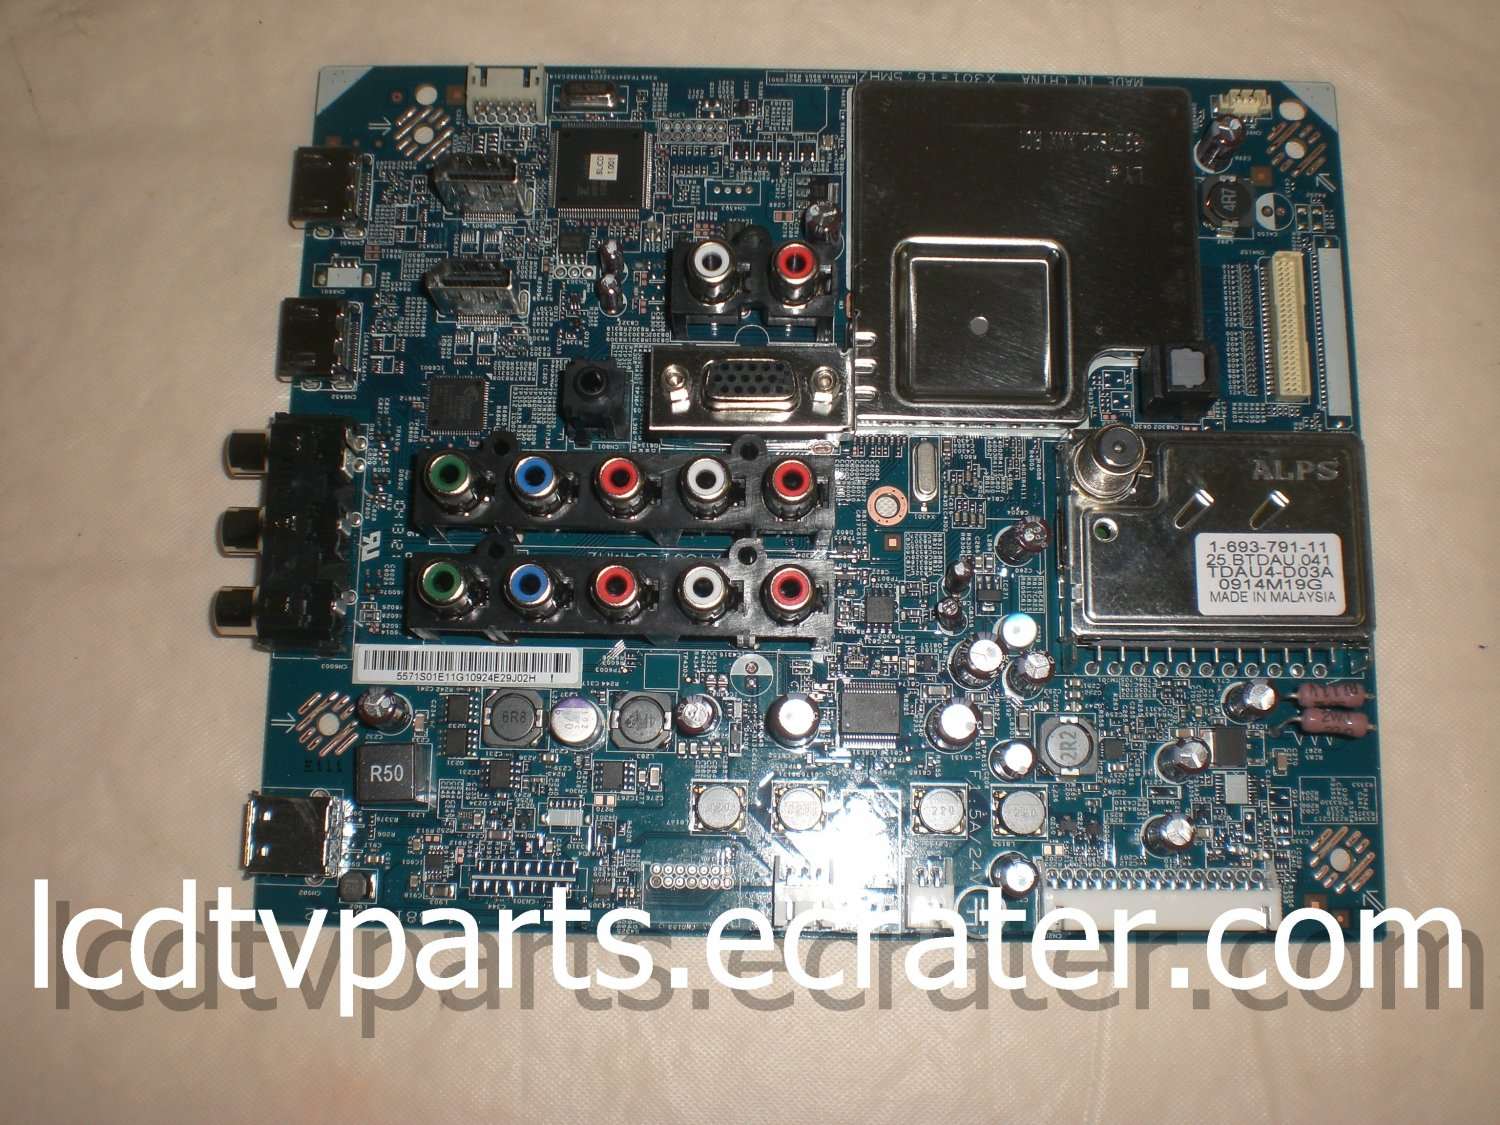 1-857-593-31, S9102-2, 1-881-683-12, 1-693-791-11, TDAU4-D03A, Main Board for SONY KDL-46EX500